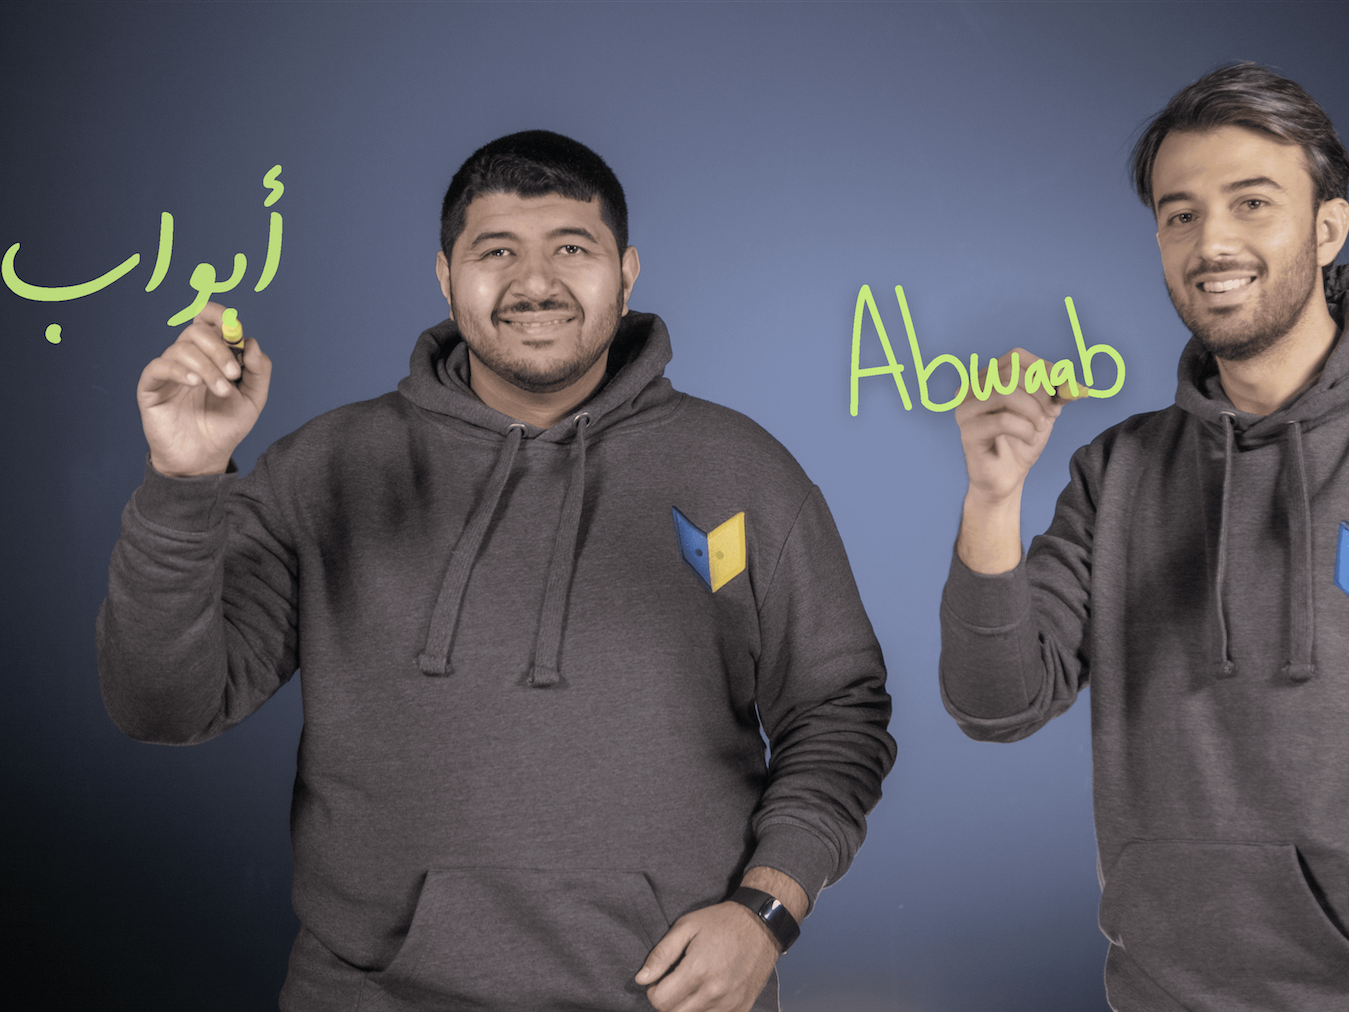 Online learning platform Abwaab raises $2.4M pre-seed funding